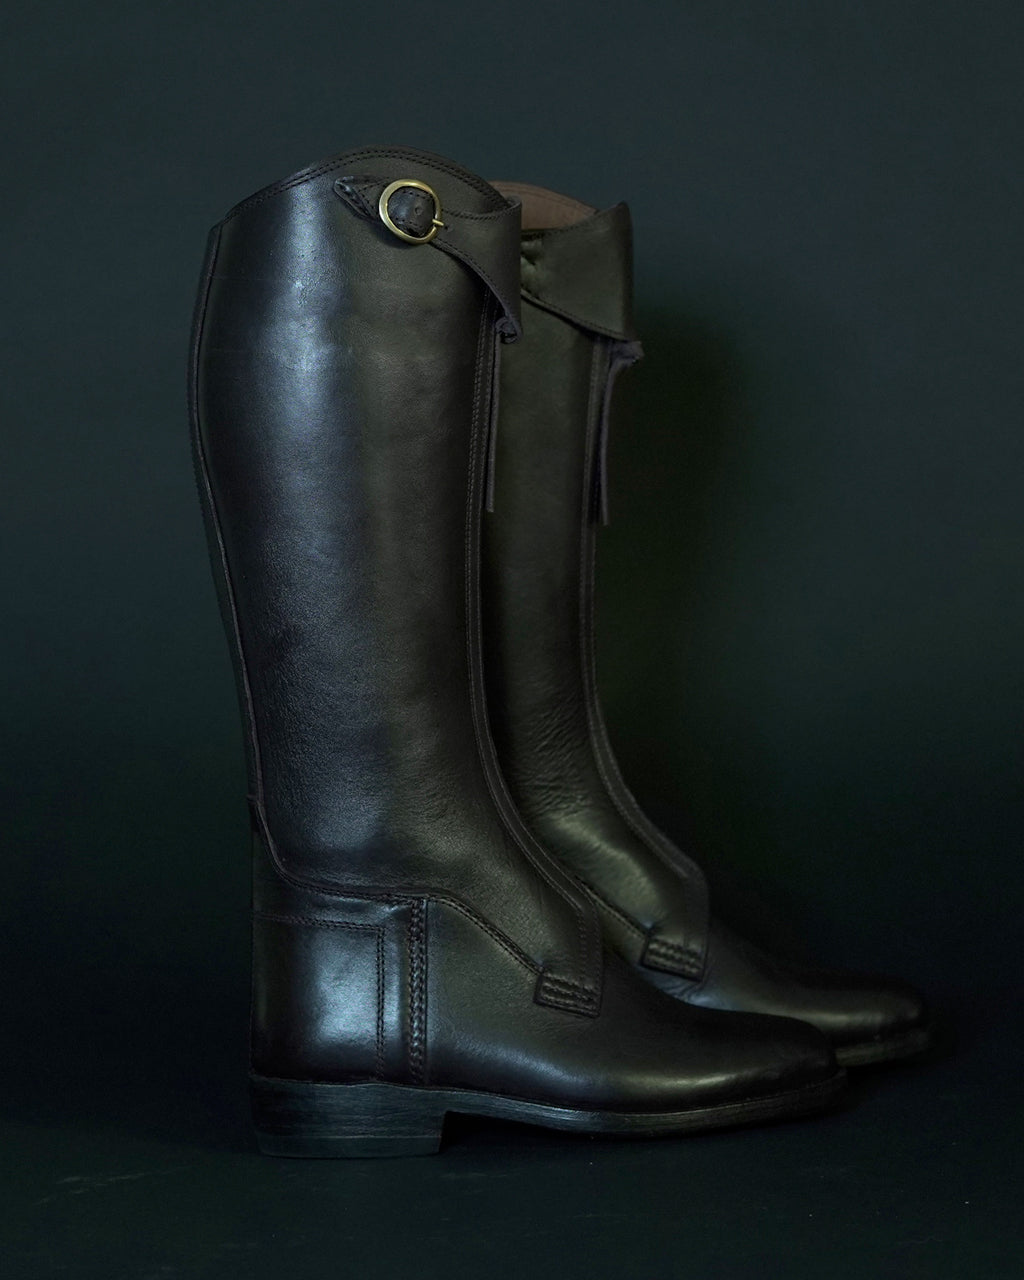 Artisan Polo Boots - Made to Order